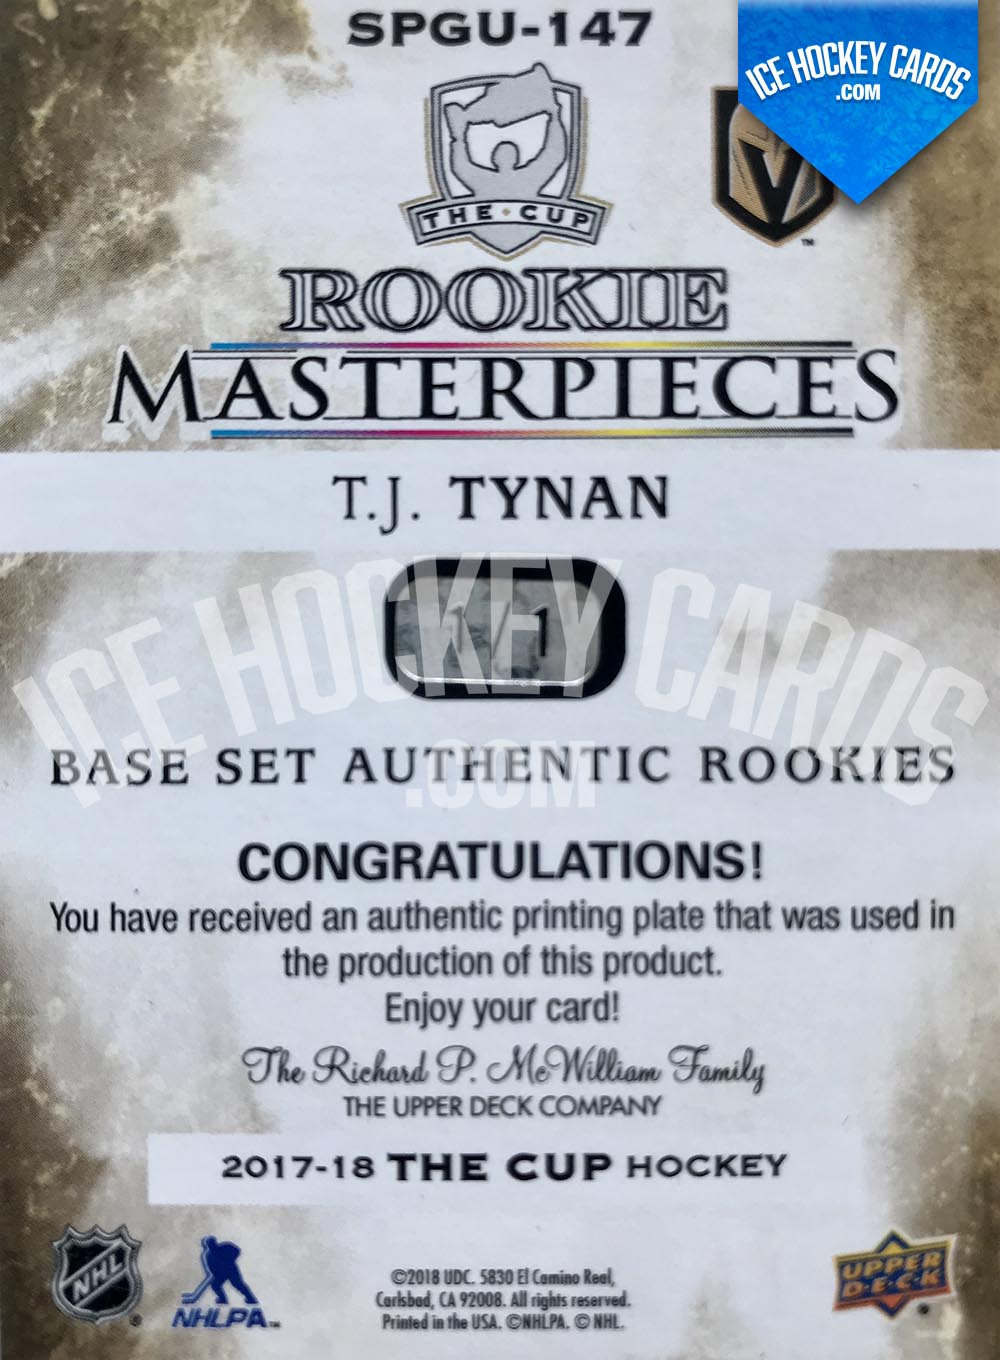 Upper Deck - The Cup 2017-18 - T.J. Tynan Rookie Masterpieces Authentic Printing Plate Magenta - 1 of 1 UNIQUE back